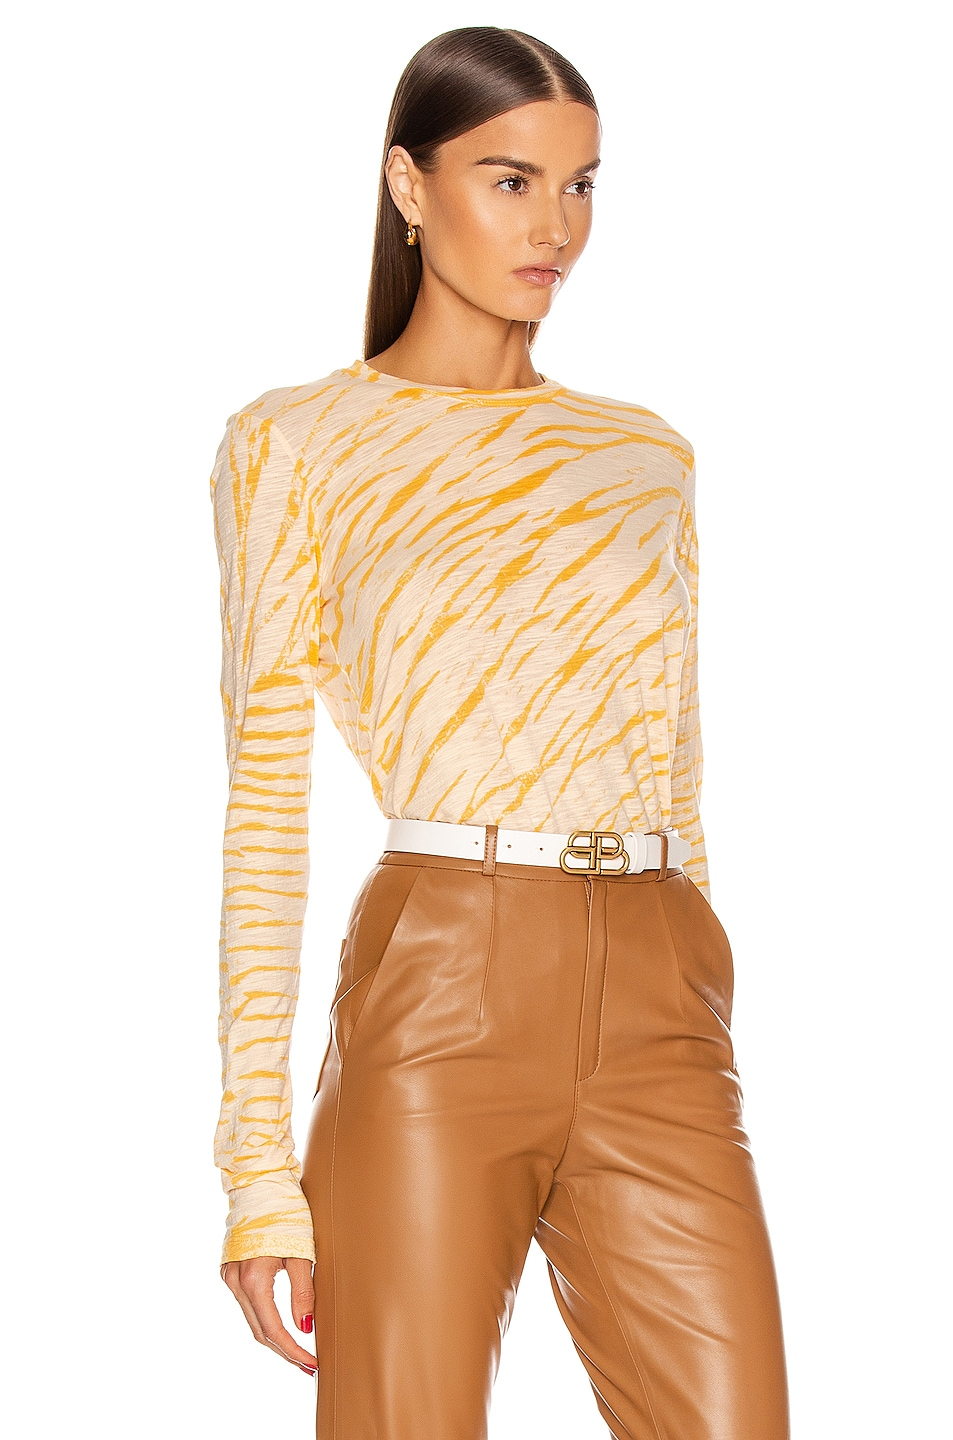 Image 2 of Proenza Schouler Long Sleeve Tie Dye Tee in Peach & Apricot Diagonal